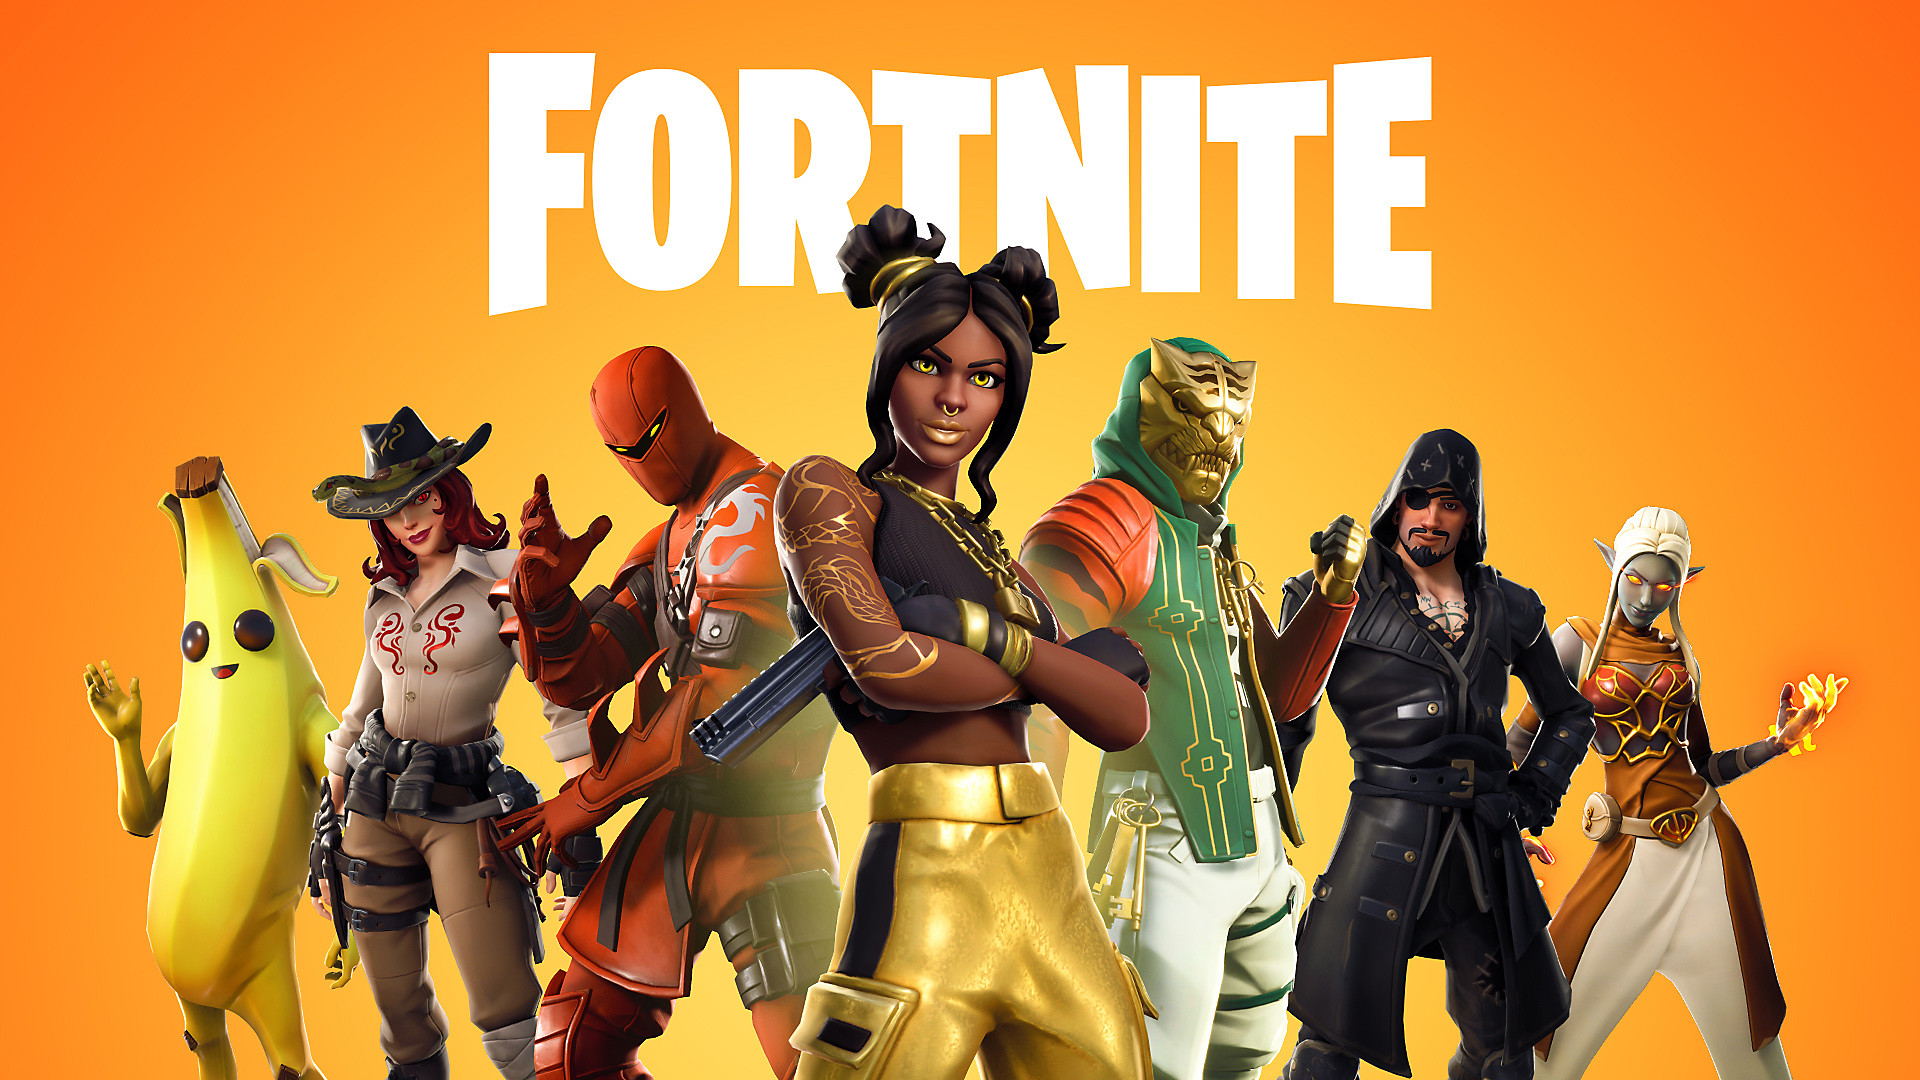 Epic and OnePlus partner to create first 90 FPS Fortnite smartphone experience